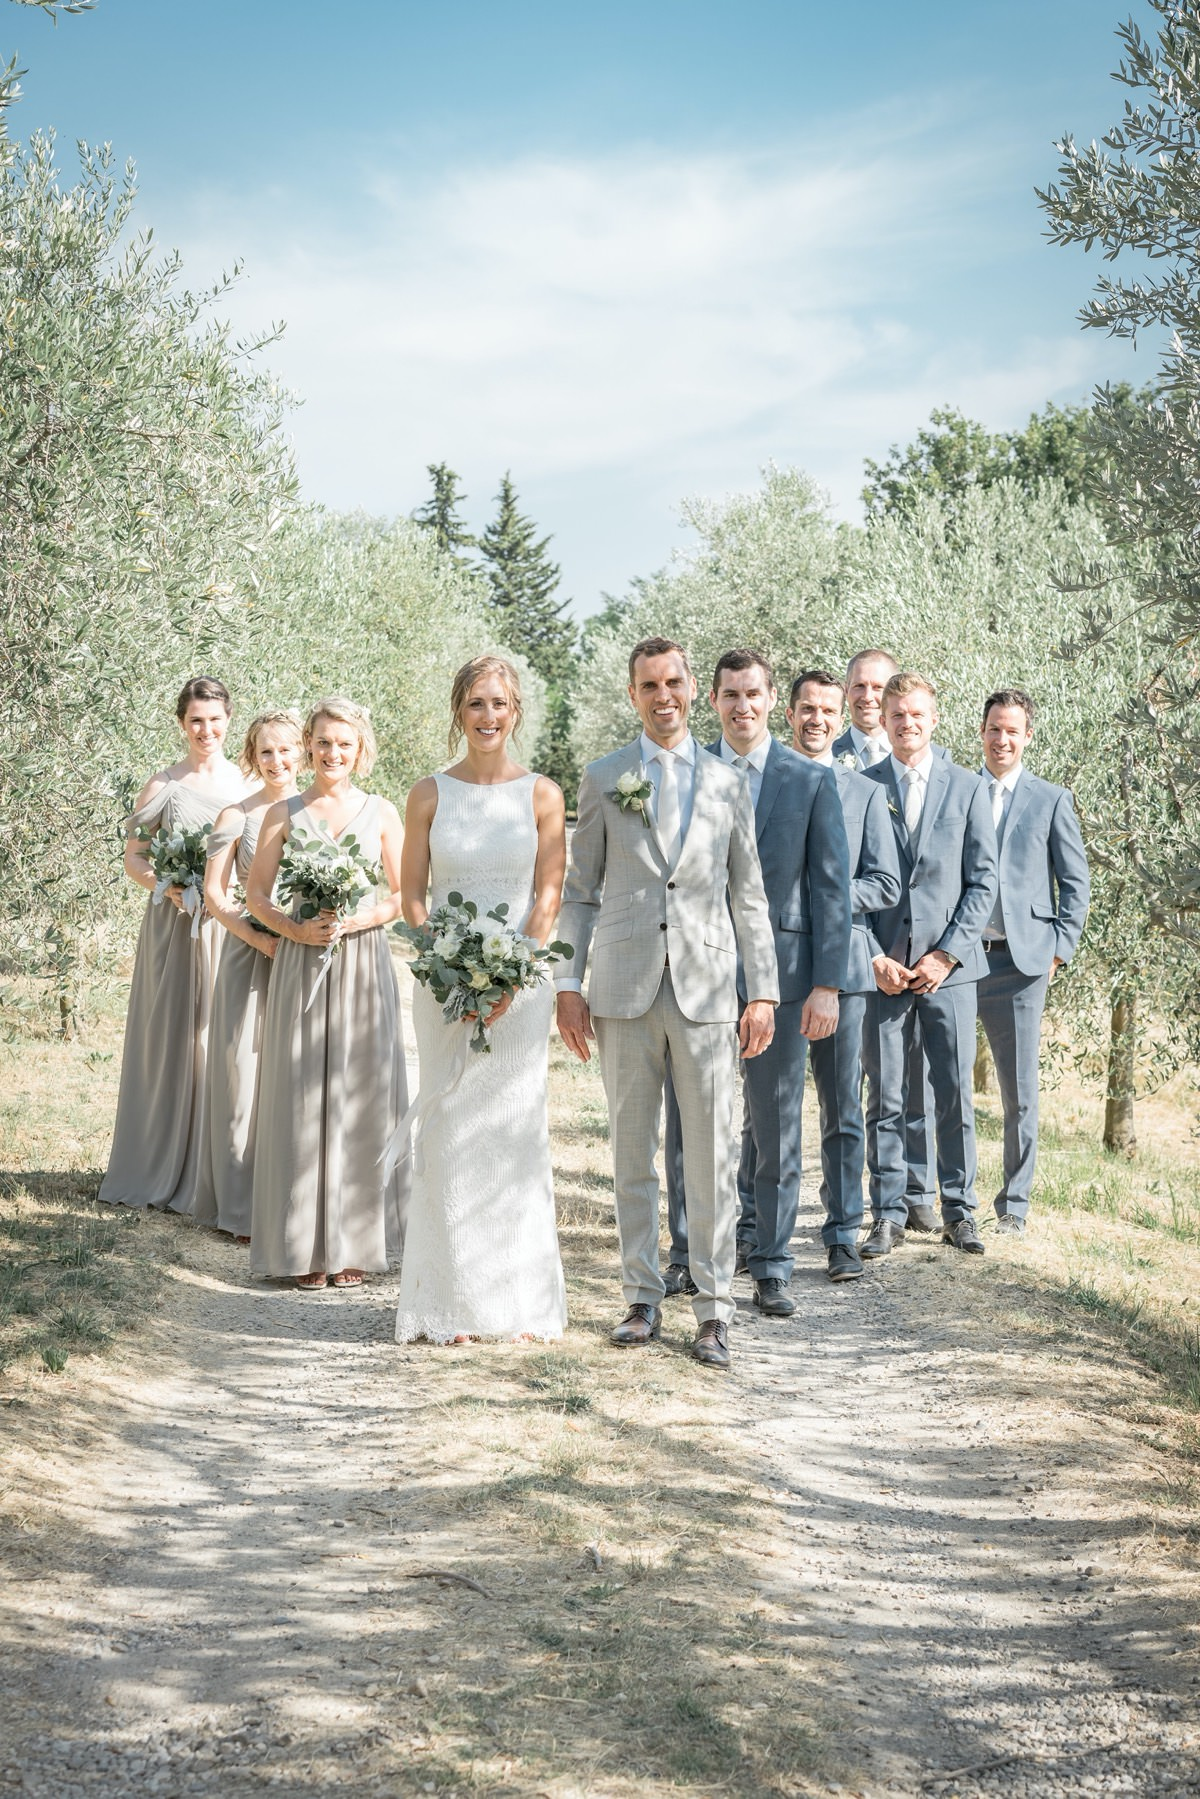 A fairy destination wedding in Tuscany on Florence hills: Alison & Alex